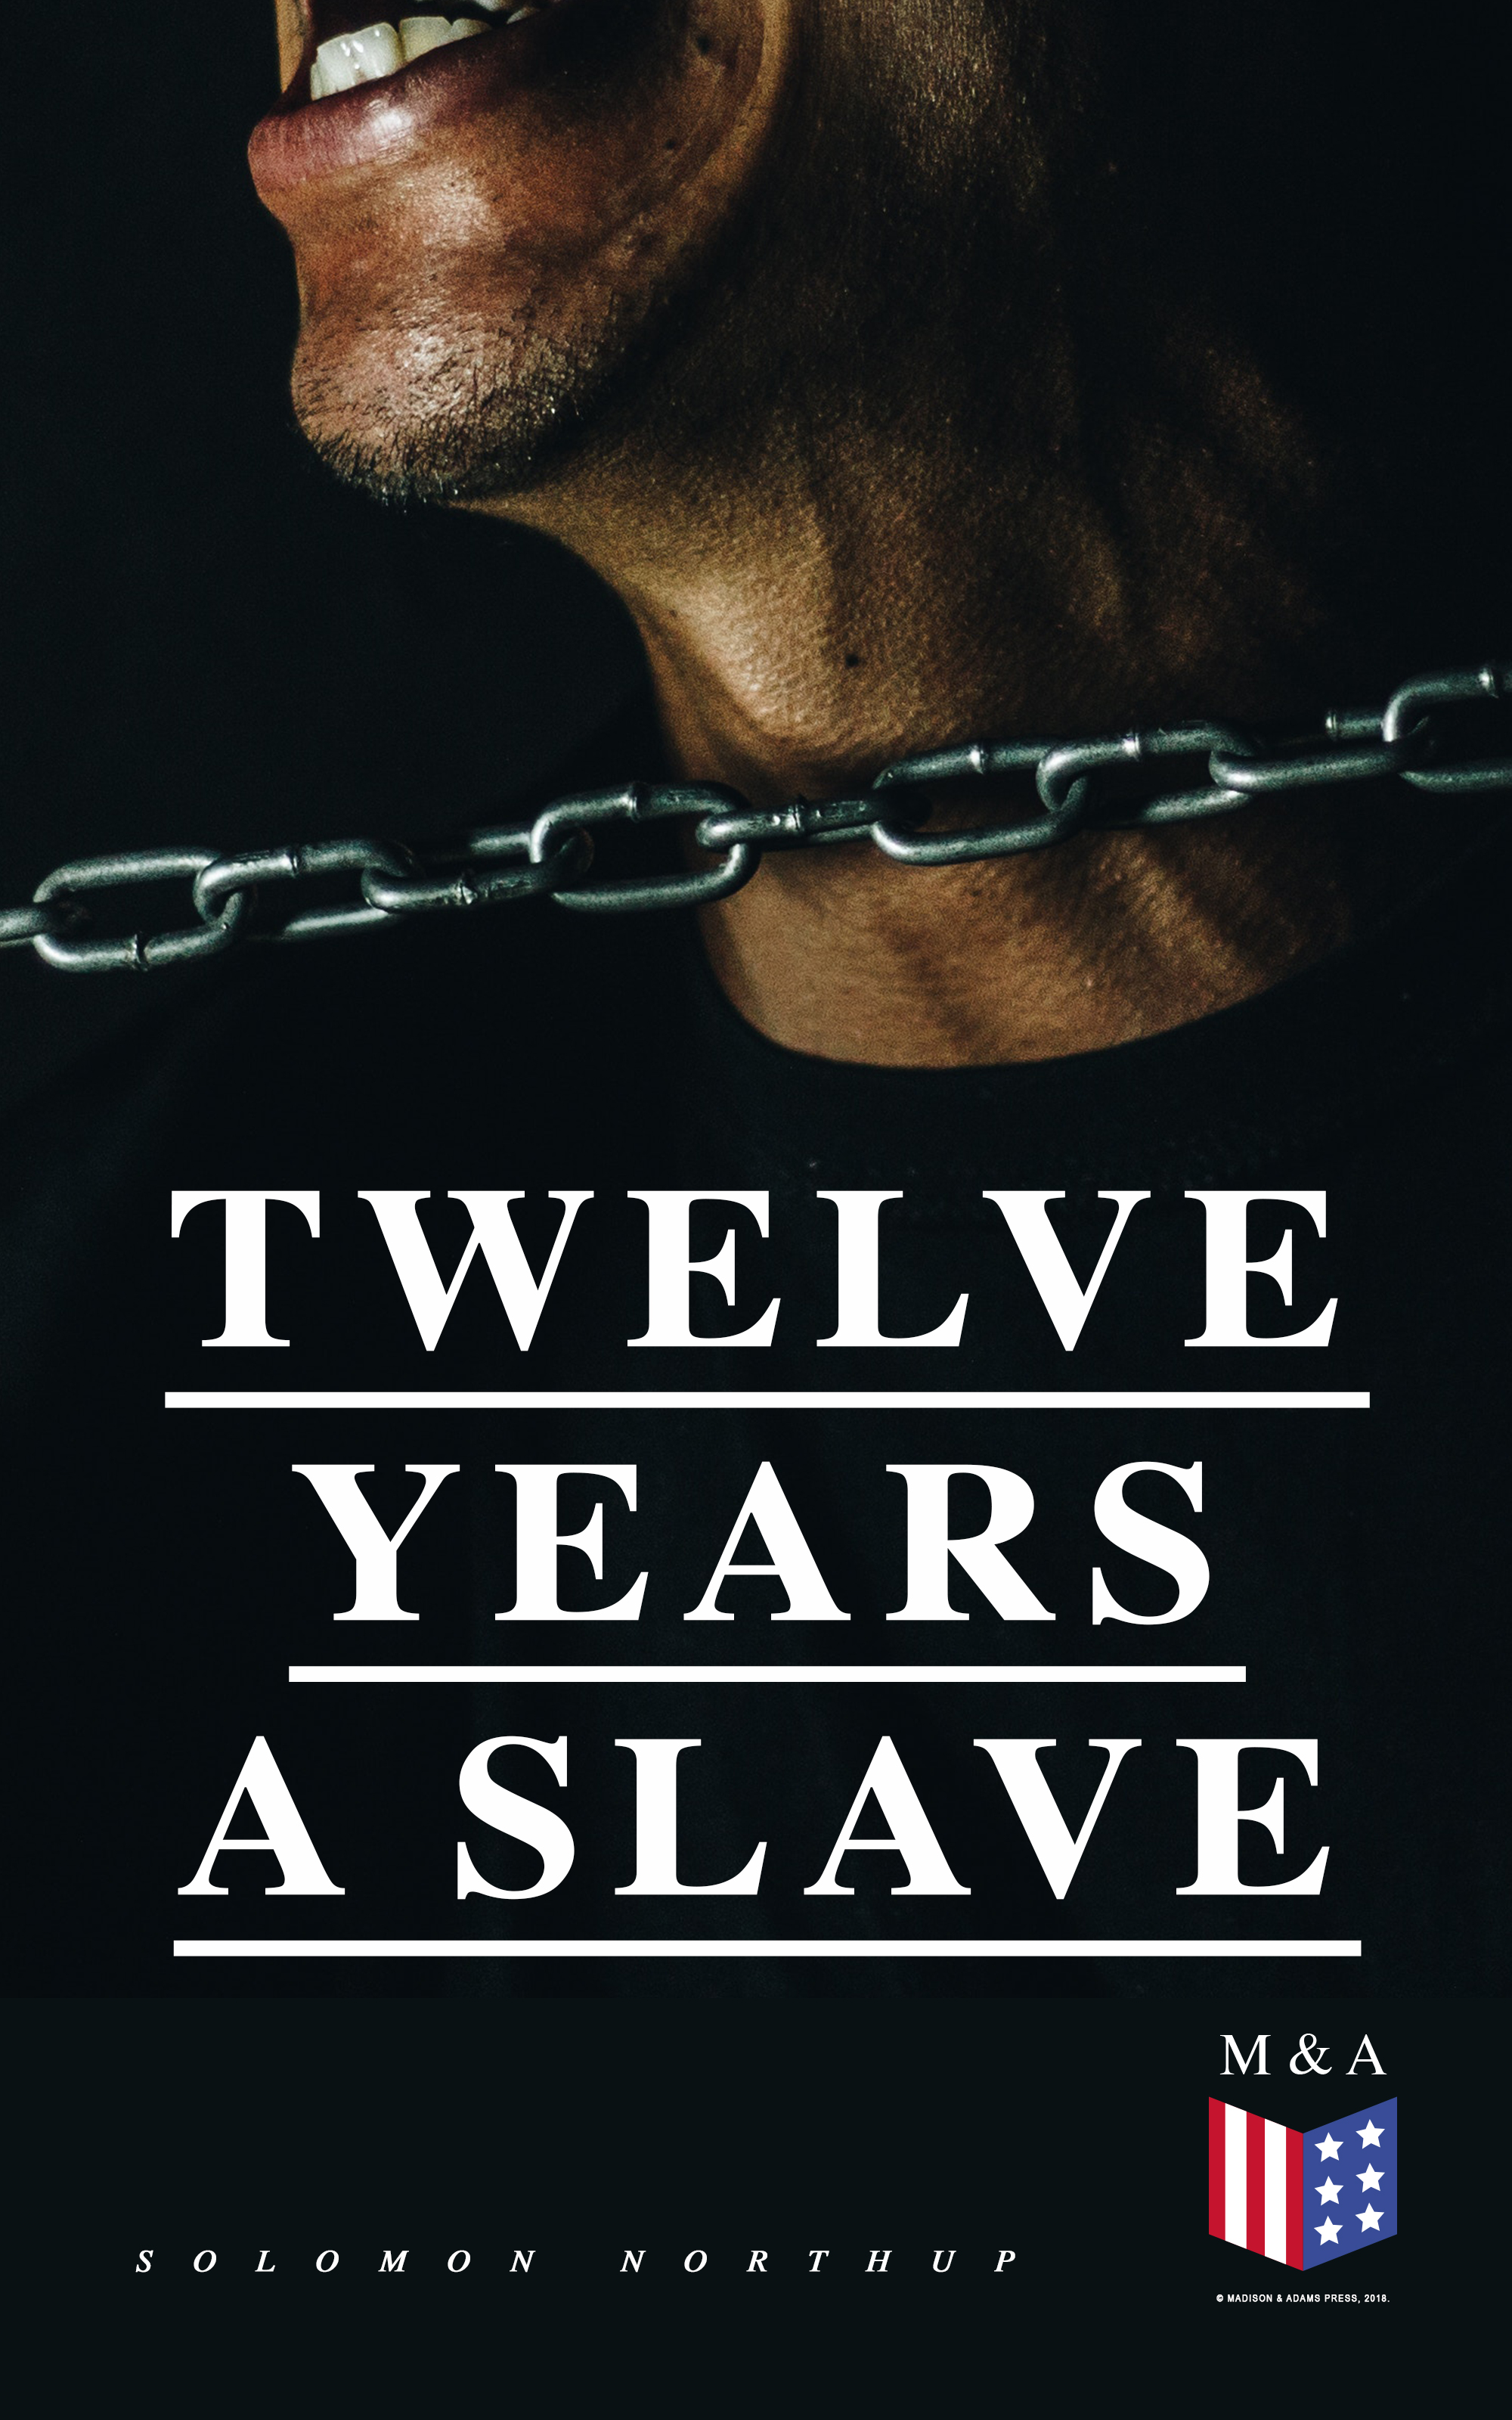 Solomon Northup Twelve Years a Slave northup s 12 years a slave isbn 9785521054497